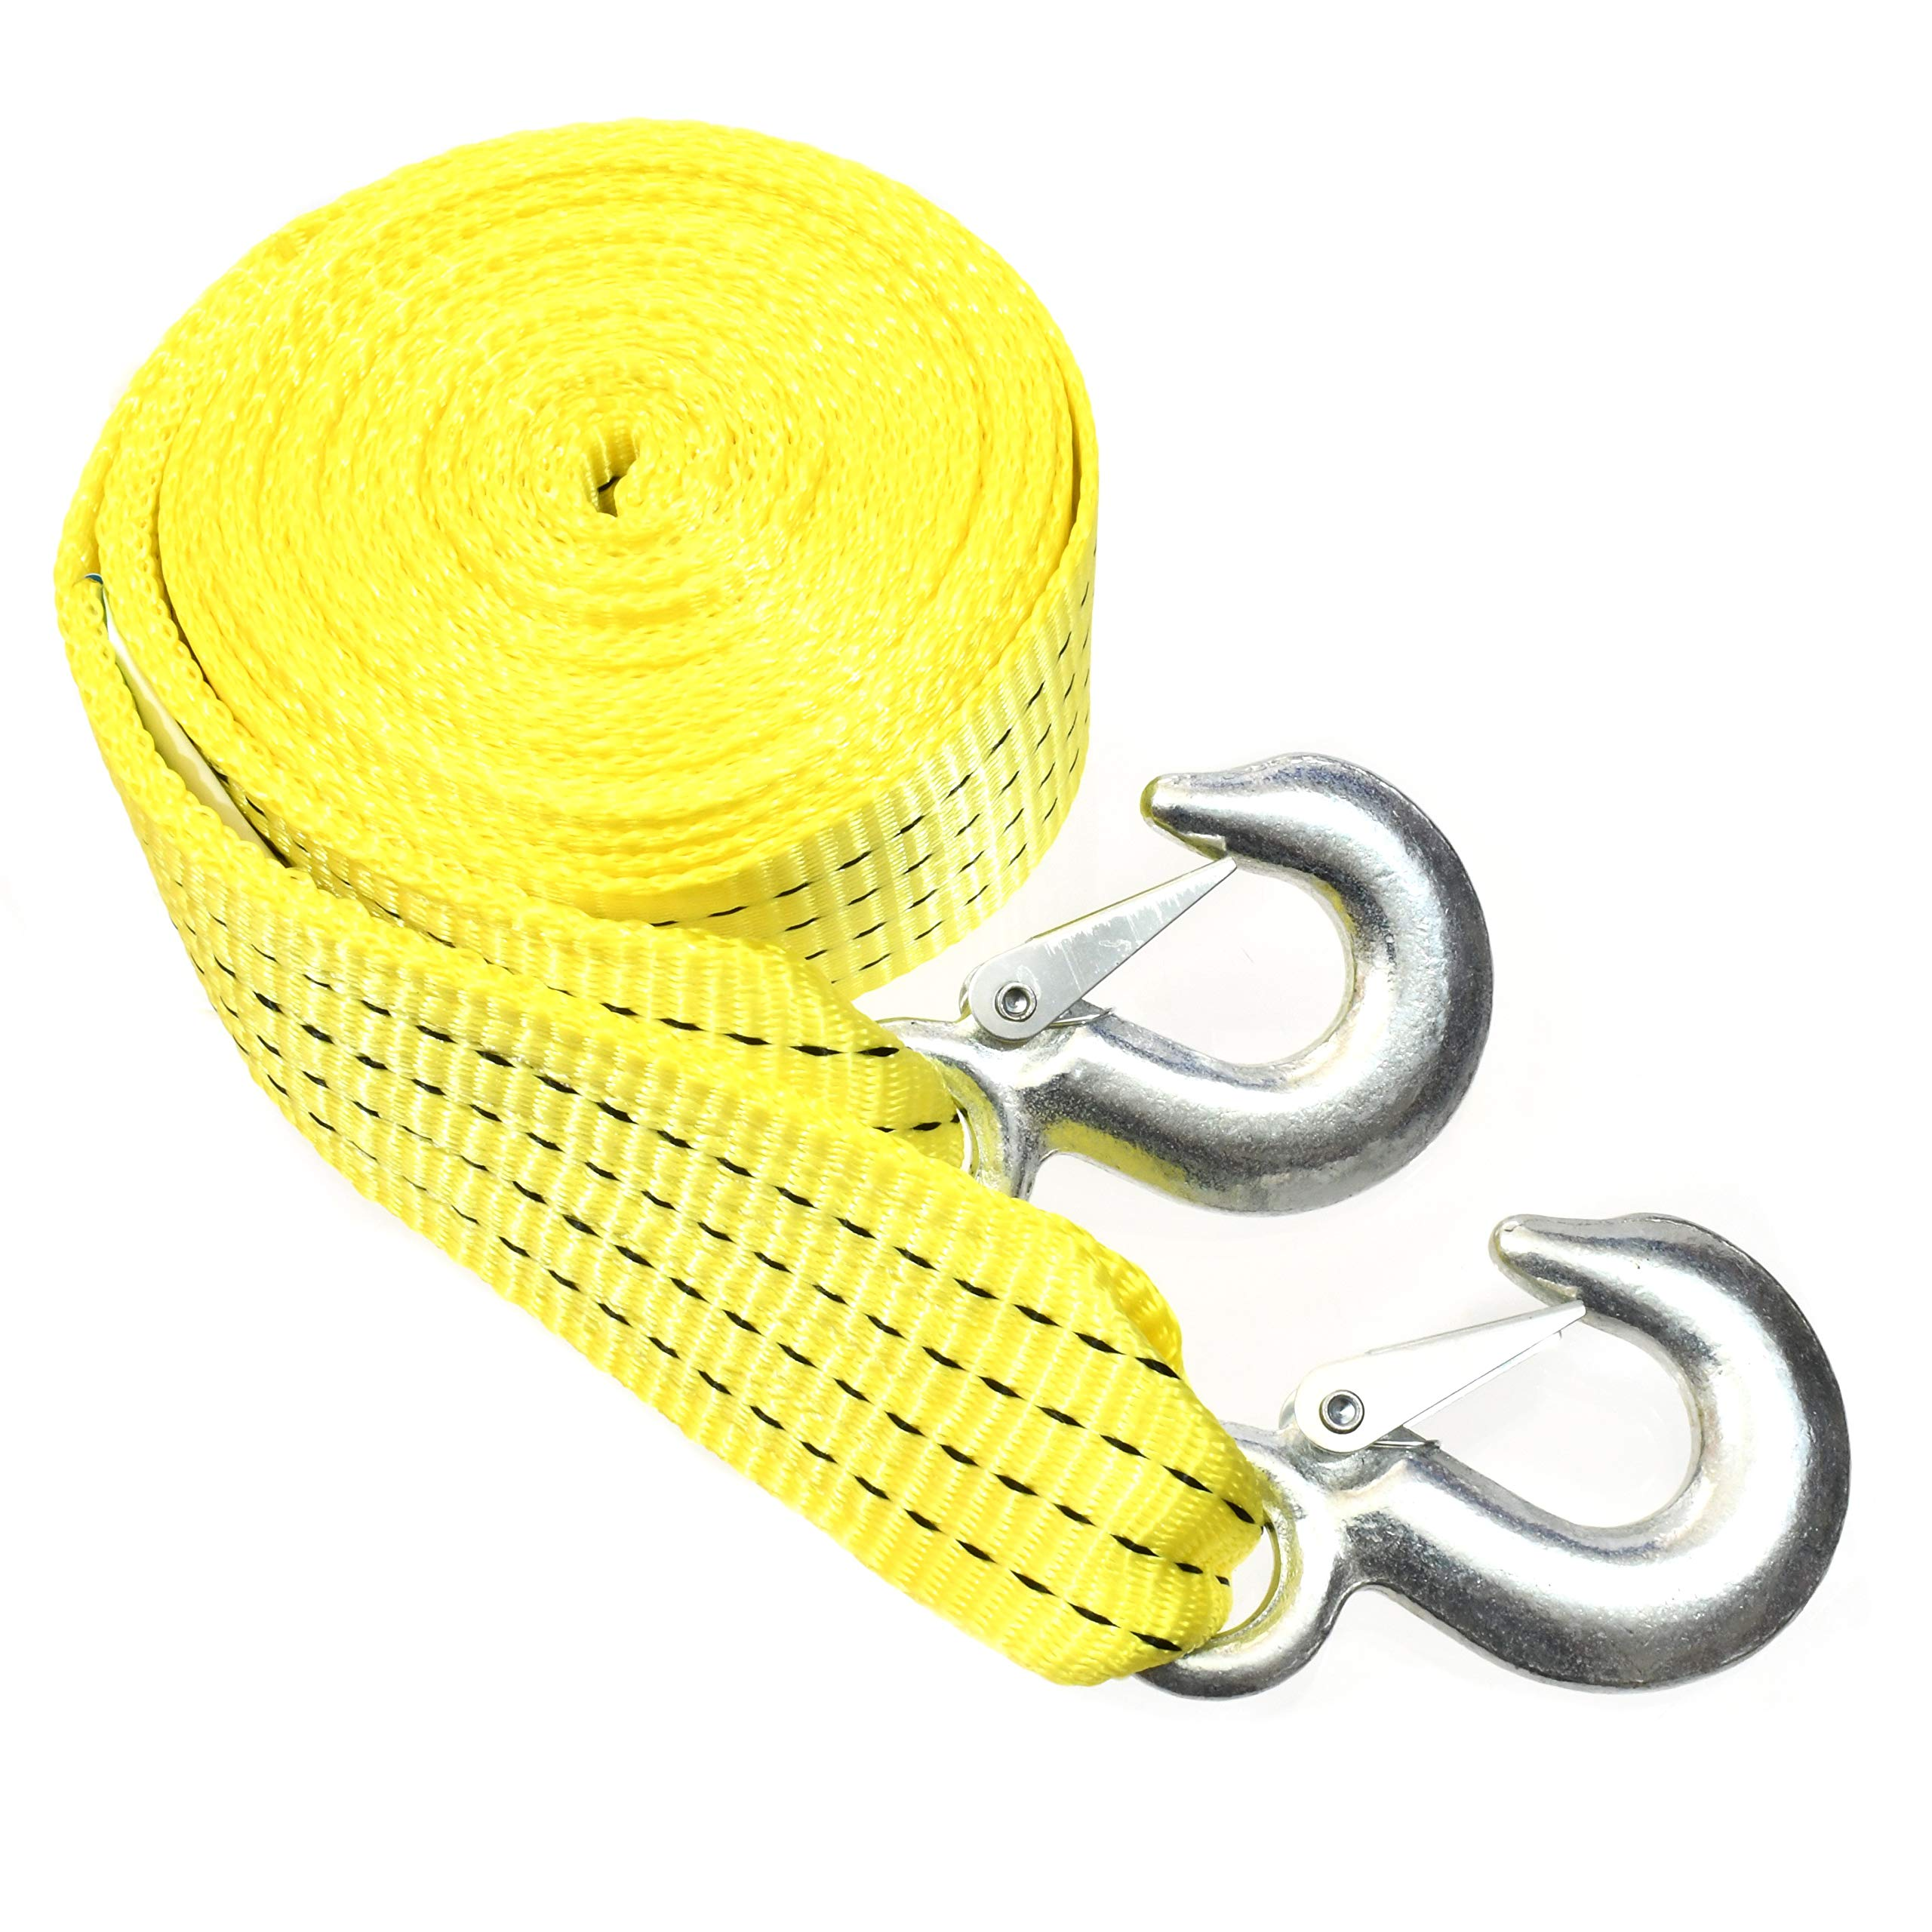 "10,000 LB Heavy Duty Tow Strap with Safety Hooks 2/"" x 20/' Polyester Superior Strength J/&R Quality Tools T/&HI-B07B9HBYKX"